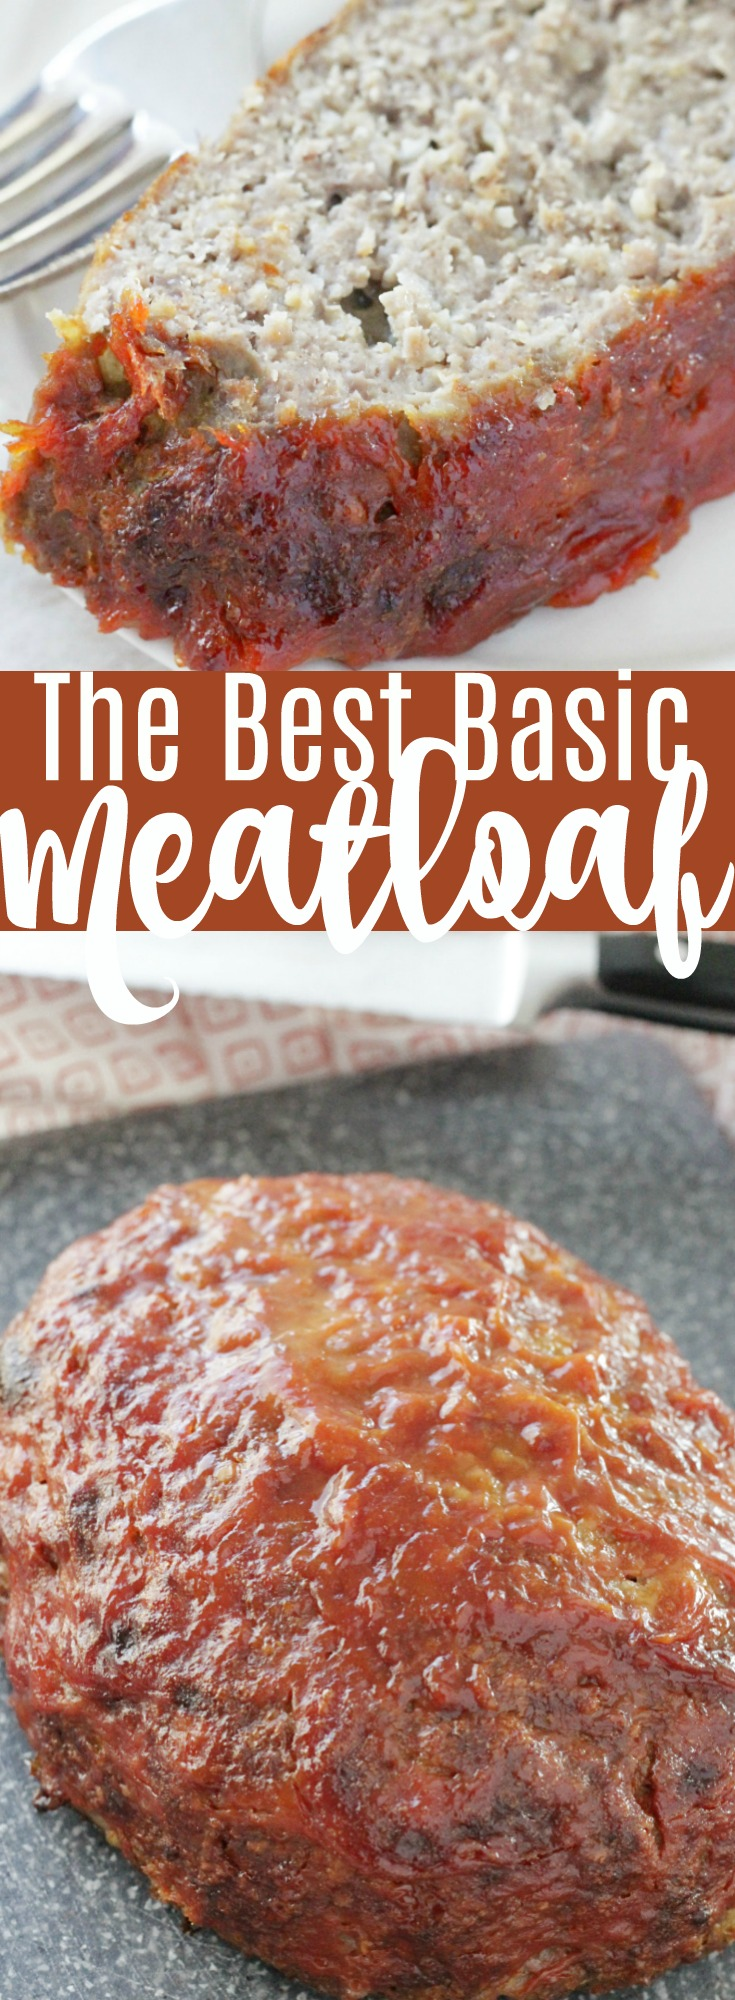 The Best Basic Meatloaf | Foodtastic Mom